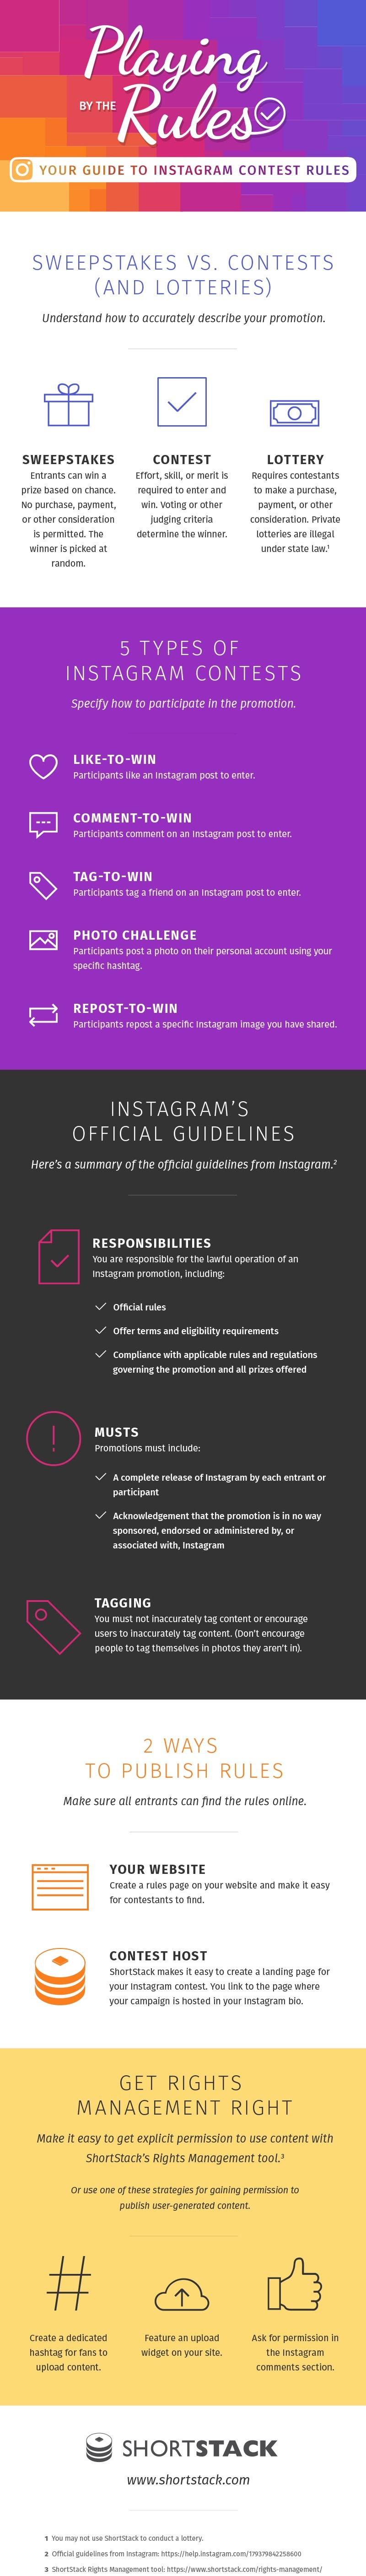 Why Instagram Contests Rule - and How to Play by the Rules [Infographic] | Social Media Today